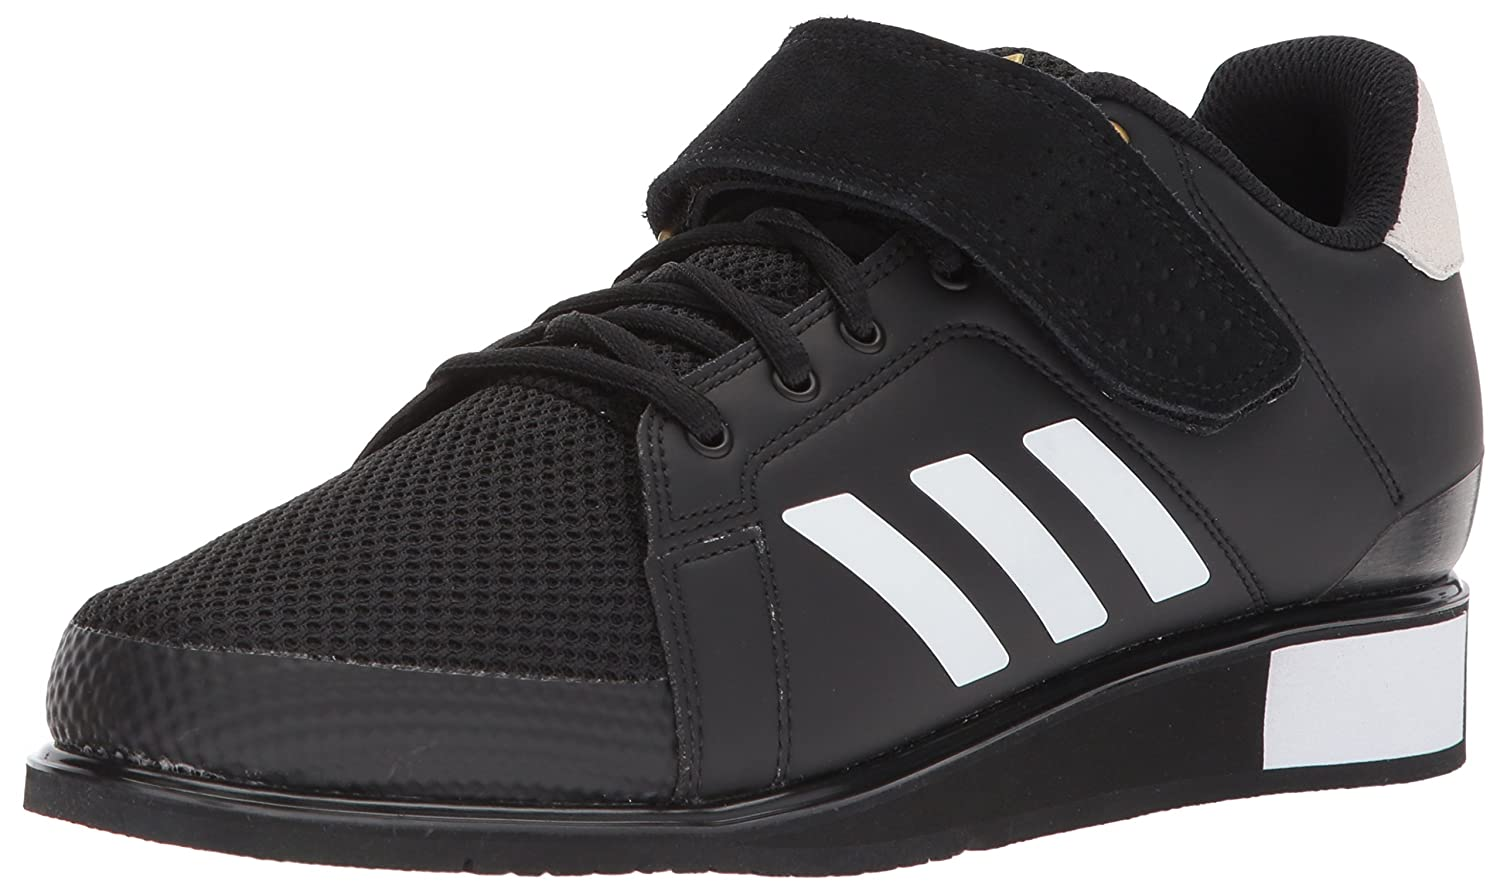 adidas Men's Power Perfect III Lifting Shoes adidas Performance BB6363